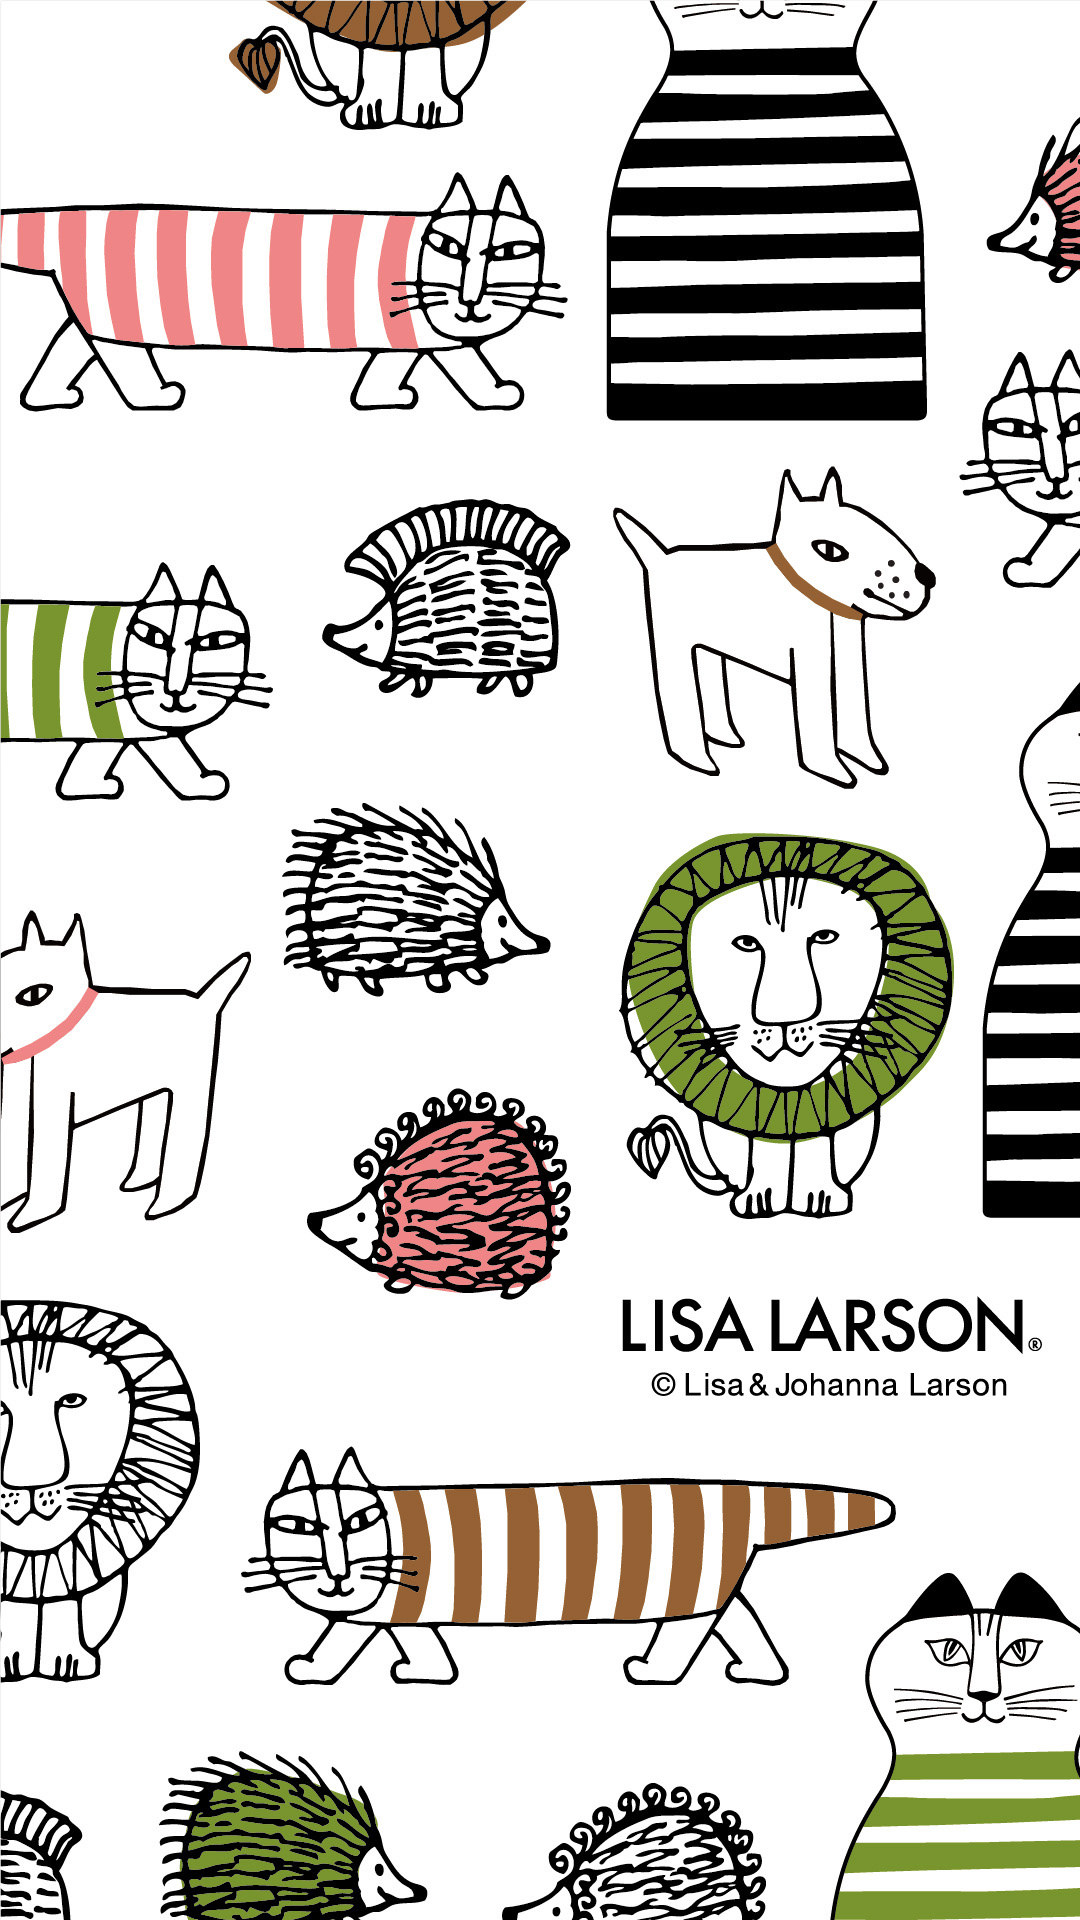 lisalarson03 - 18 Lisa Larson HQ Smartphone Wallpaper Collection